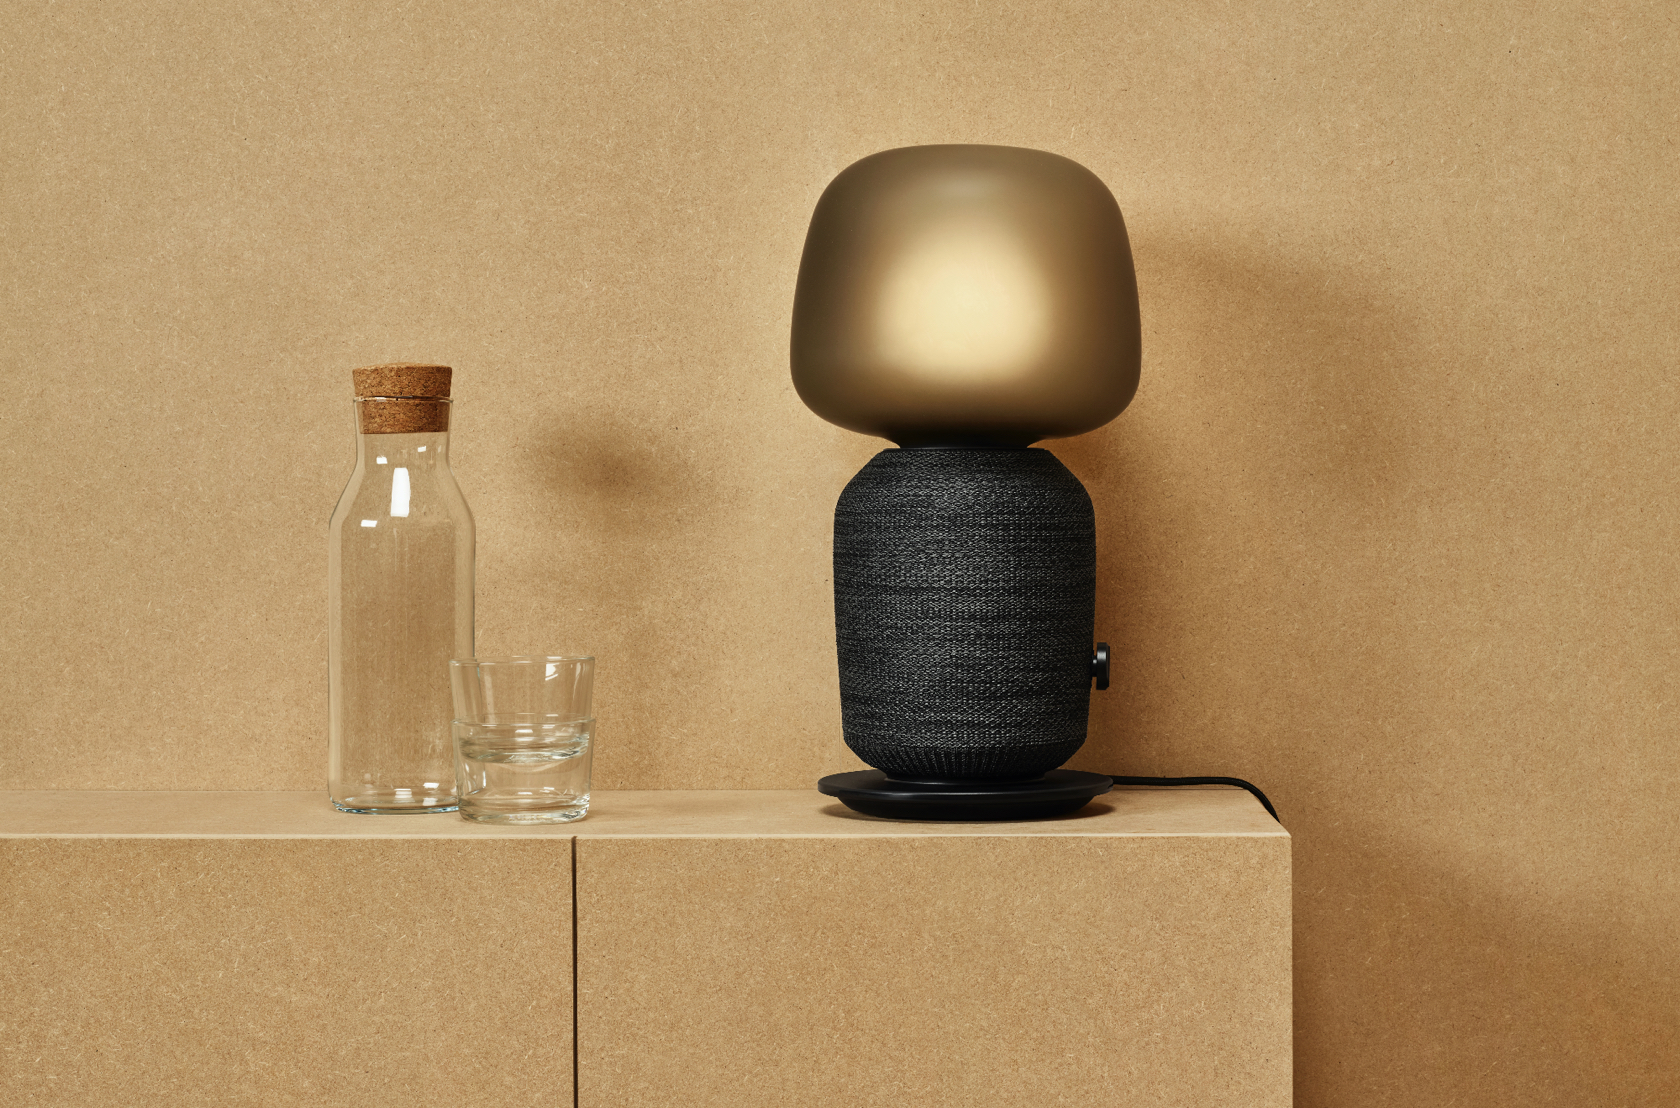 sonos and ikea lamp